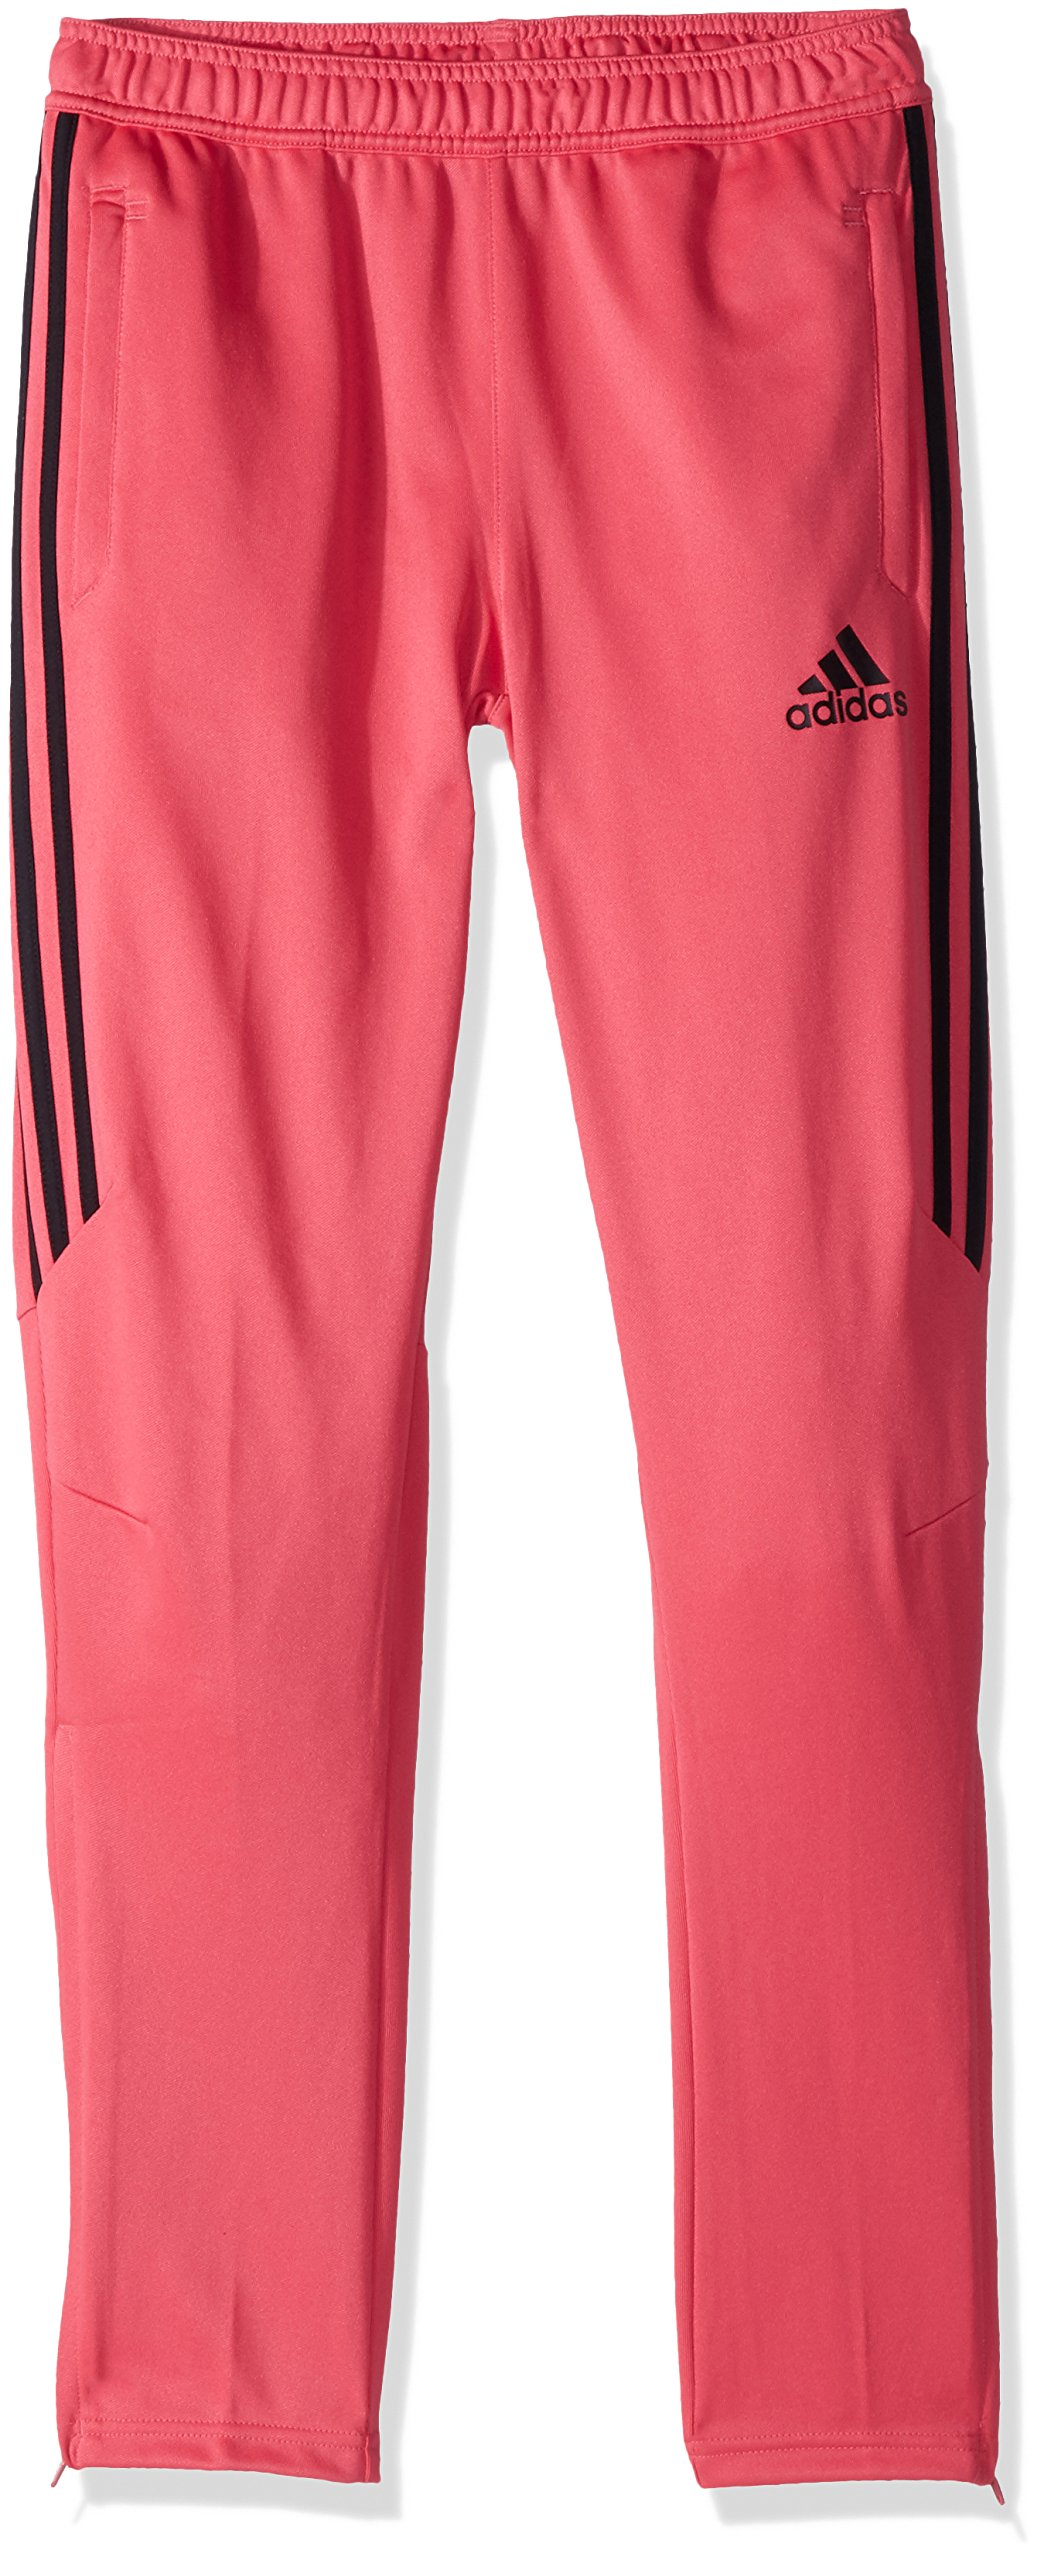 adidas Youth Soccer Tiro 17 Training Pants, Real Pink/Black, X-Small by adidas (Image #1)